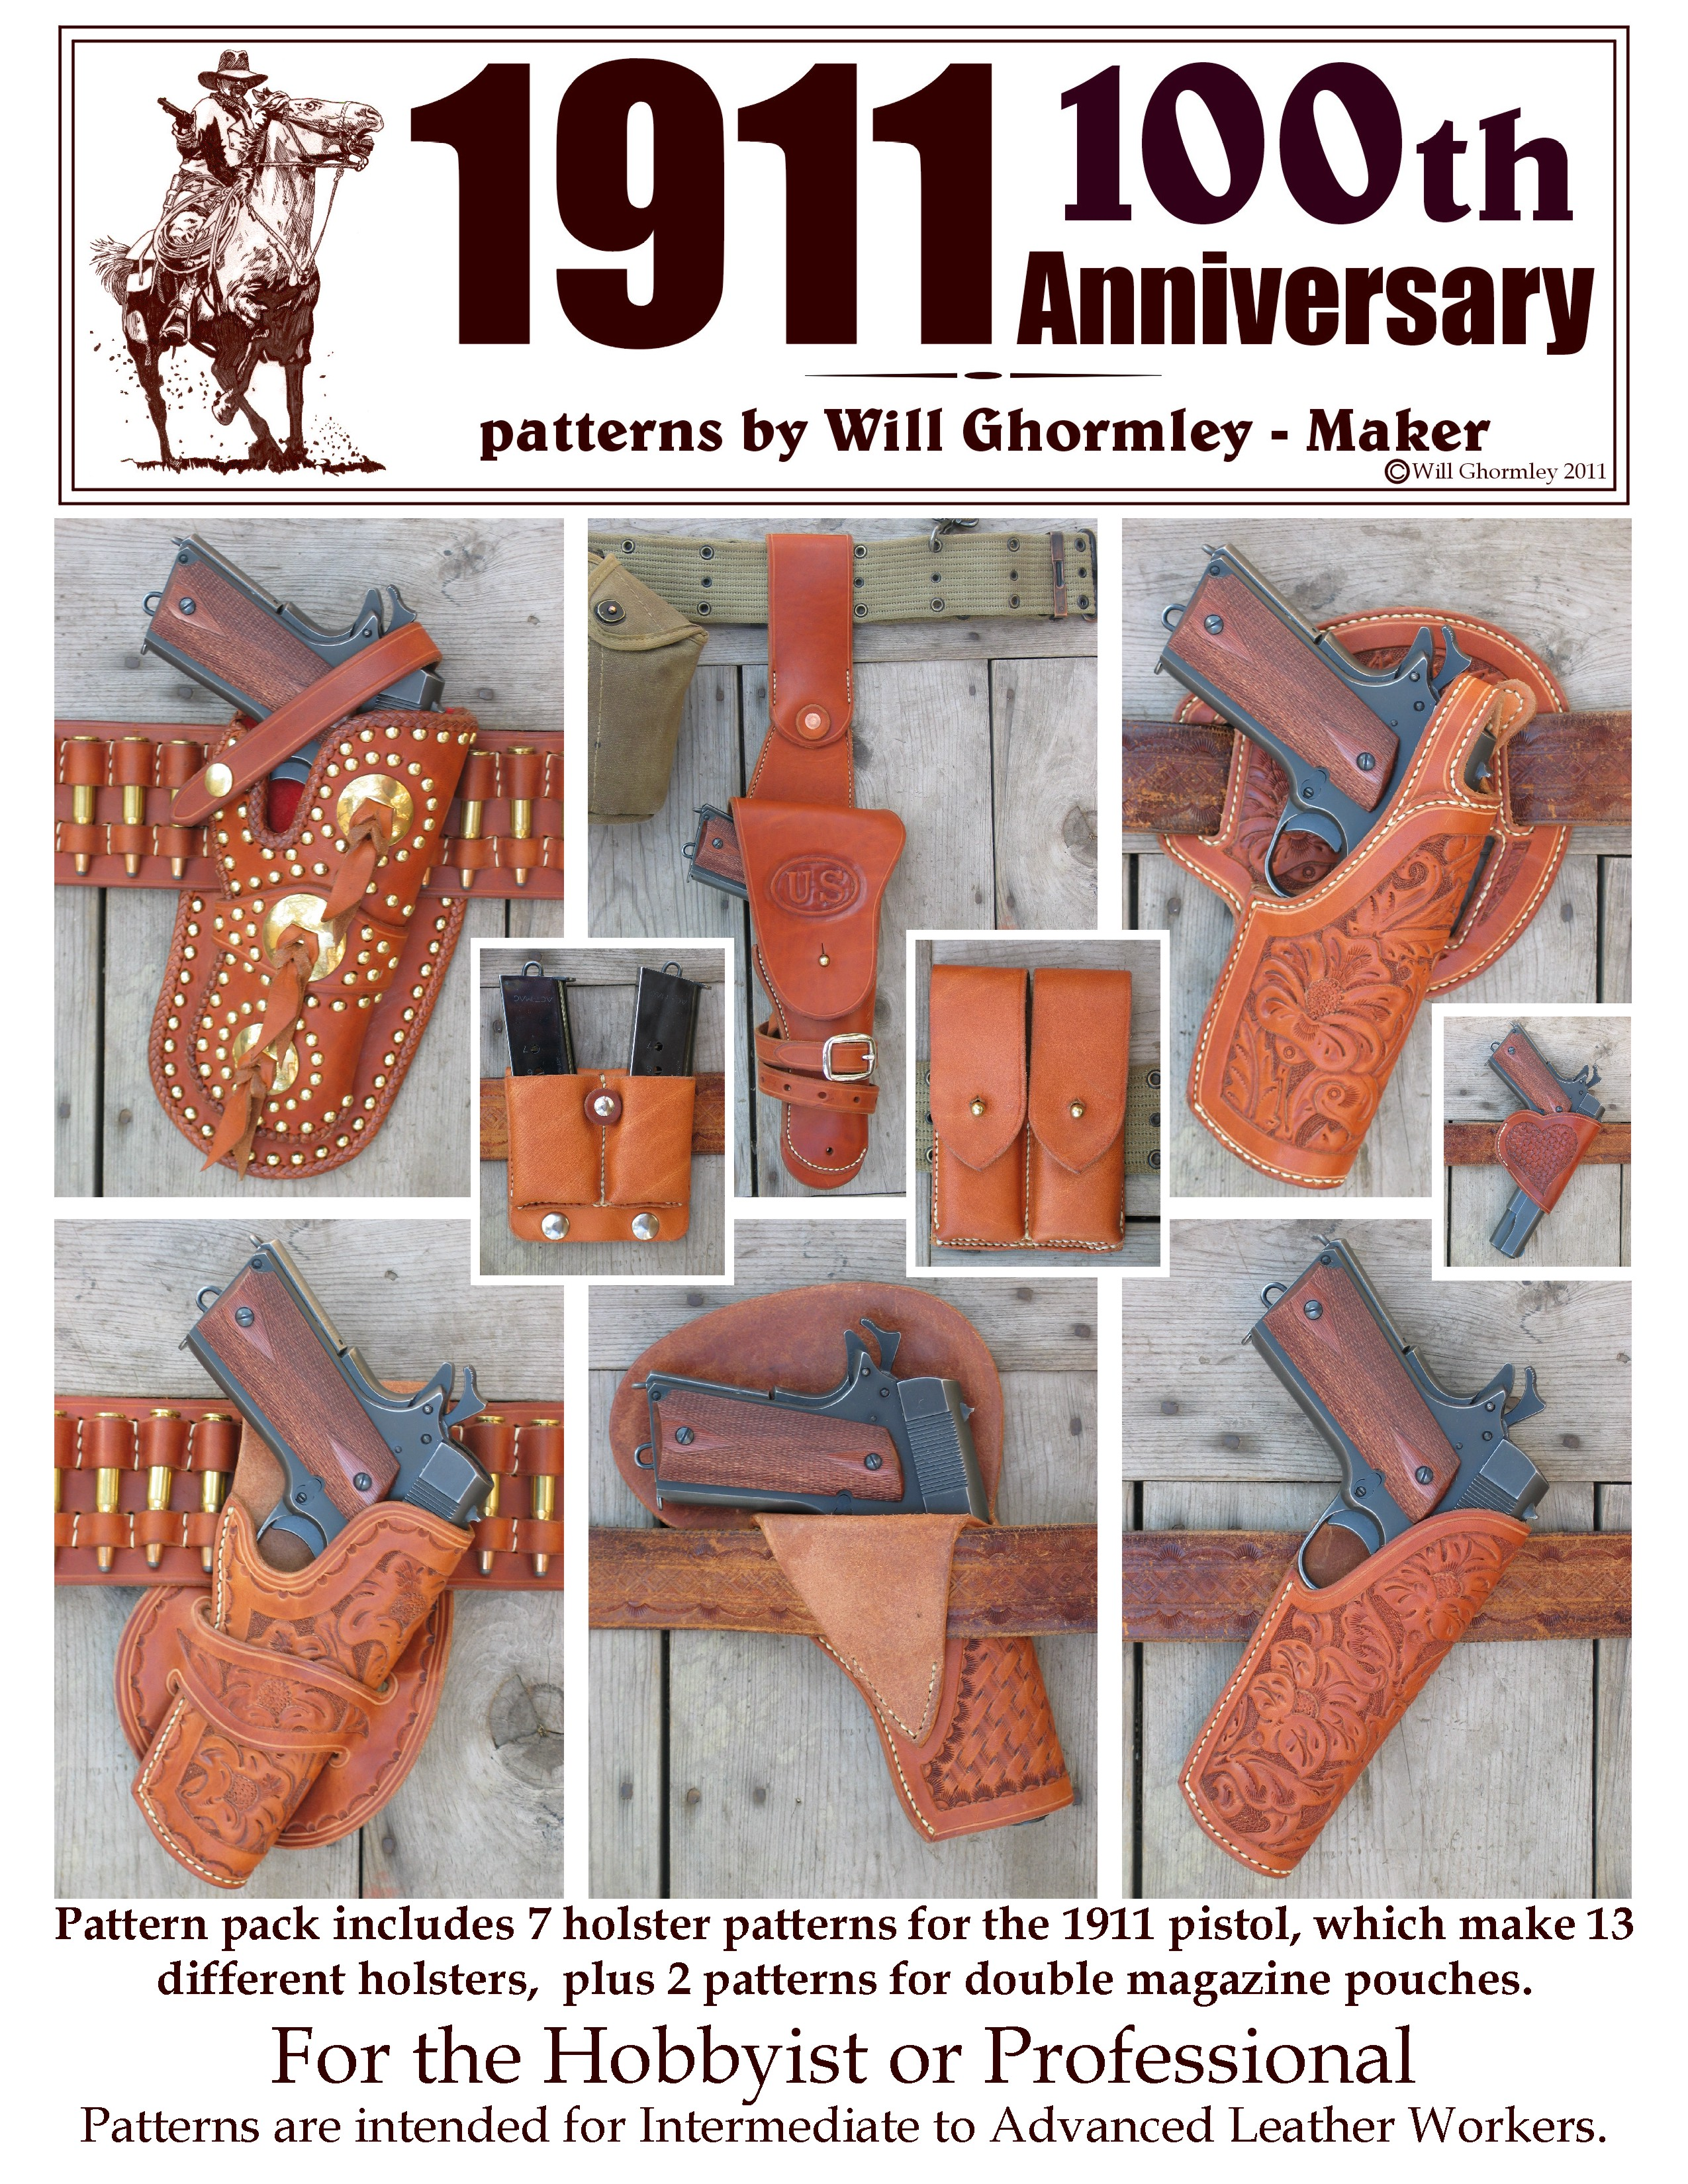 Will Ghormley Maker Old West Collection Patterns